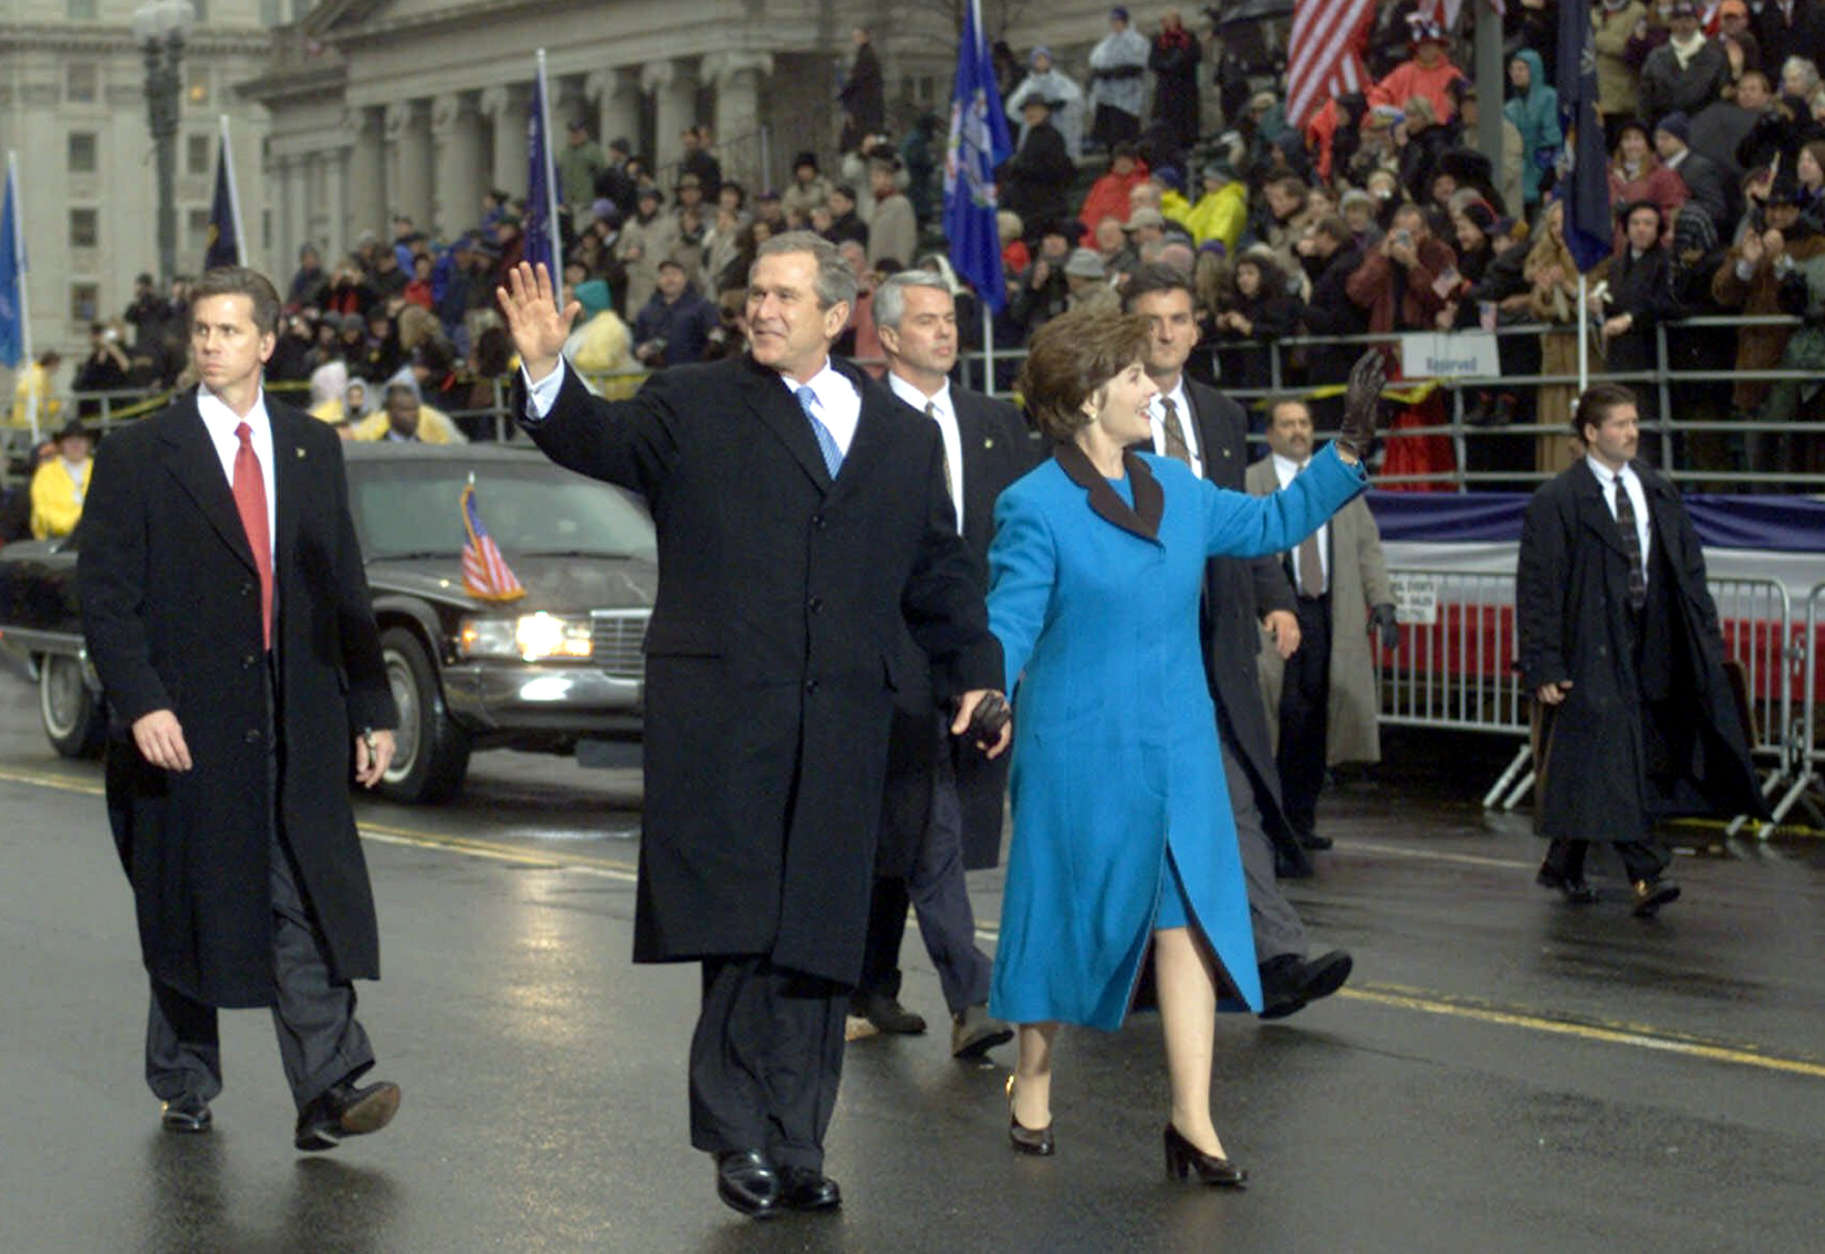 ** FILE ** With Secret Service agents accompanying them, President Bush and first lady Laura Bush wave as they walk down Pennsylvania Avenue during the Inaugural Parade in Washington  in this Jan. 20, 2001 file photo.   Security for the 2005 inauguration is expected to be the tightest in inaugural history.  (AP Photo/Doug Mills, File)